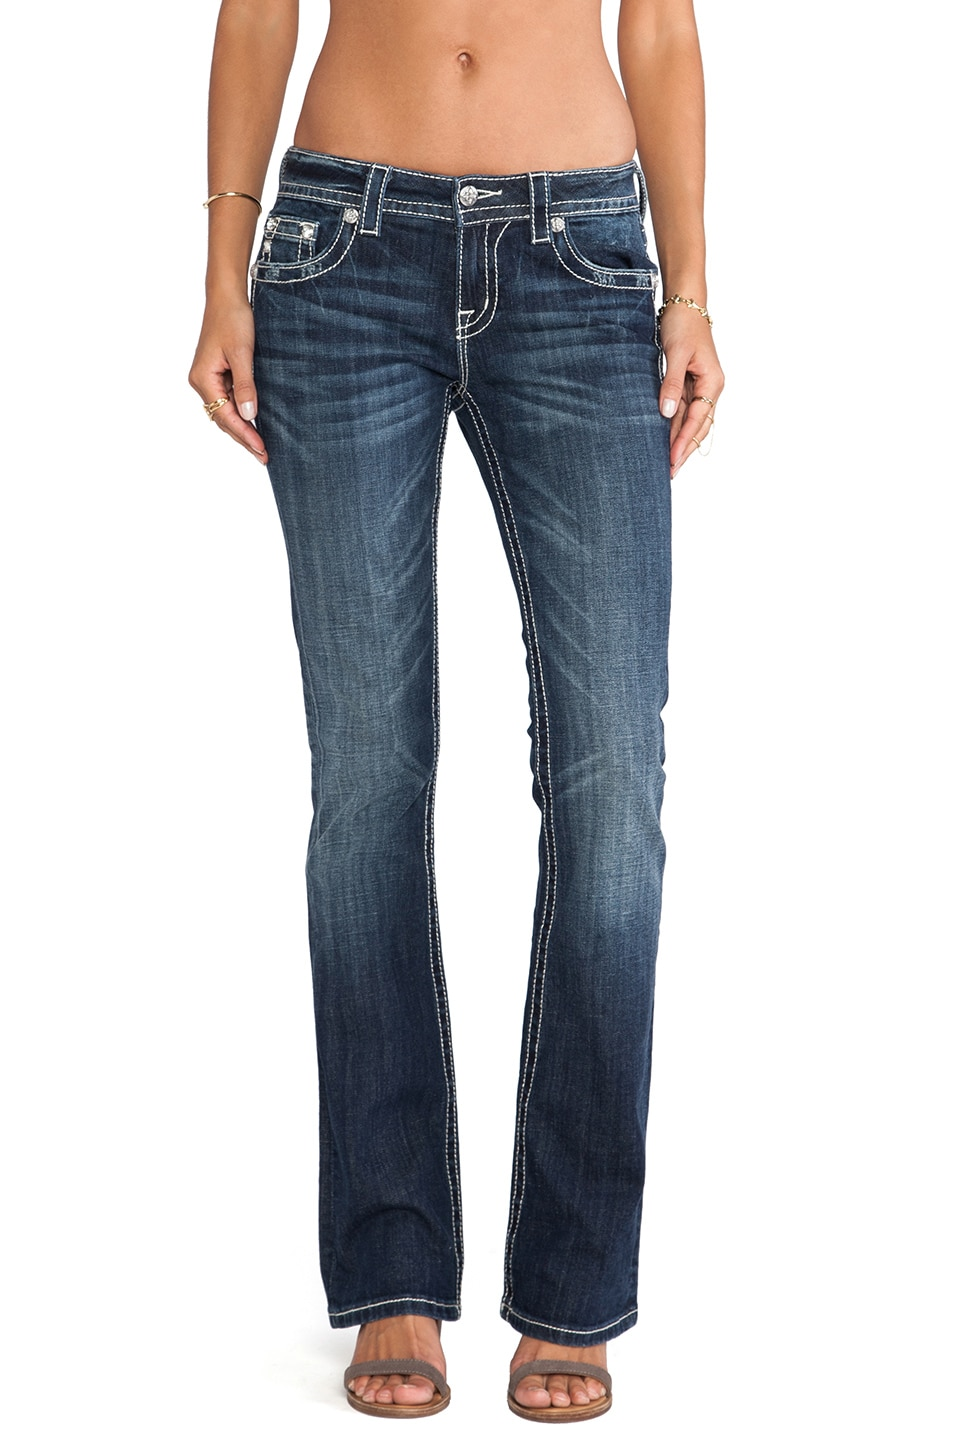 Miss Me Jeans Relaxed Bootcut in MK 299